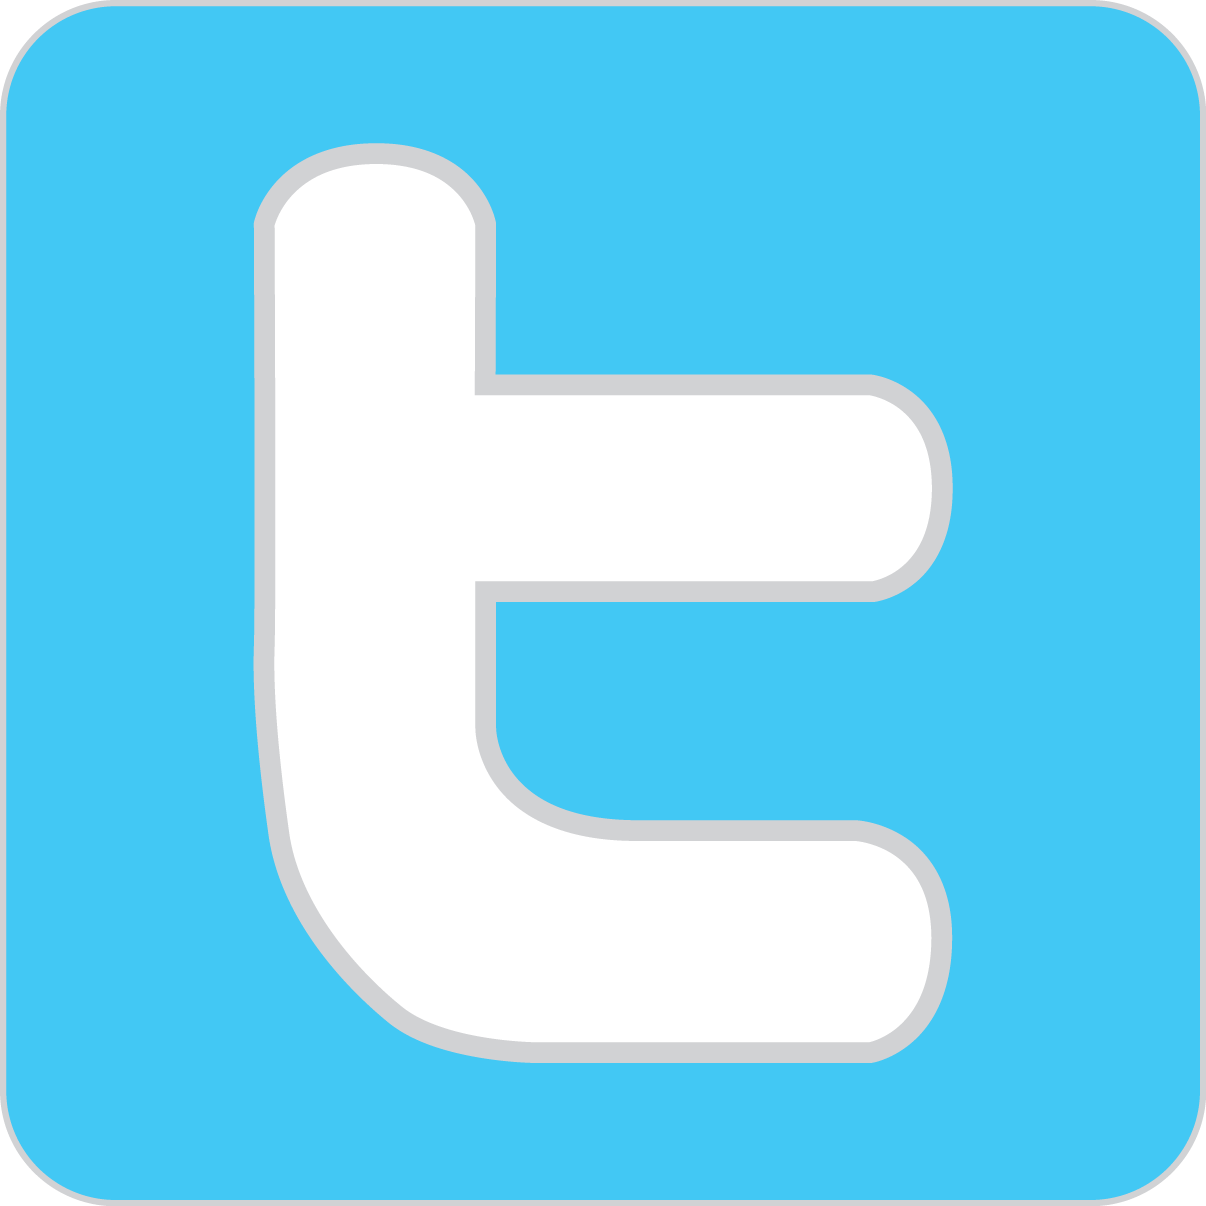 Logo Twitter Icon Free Download PNG HQ PNG Image